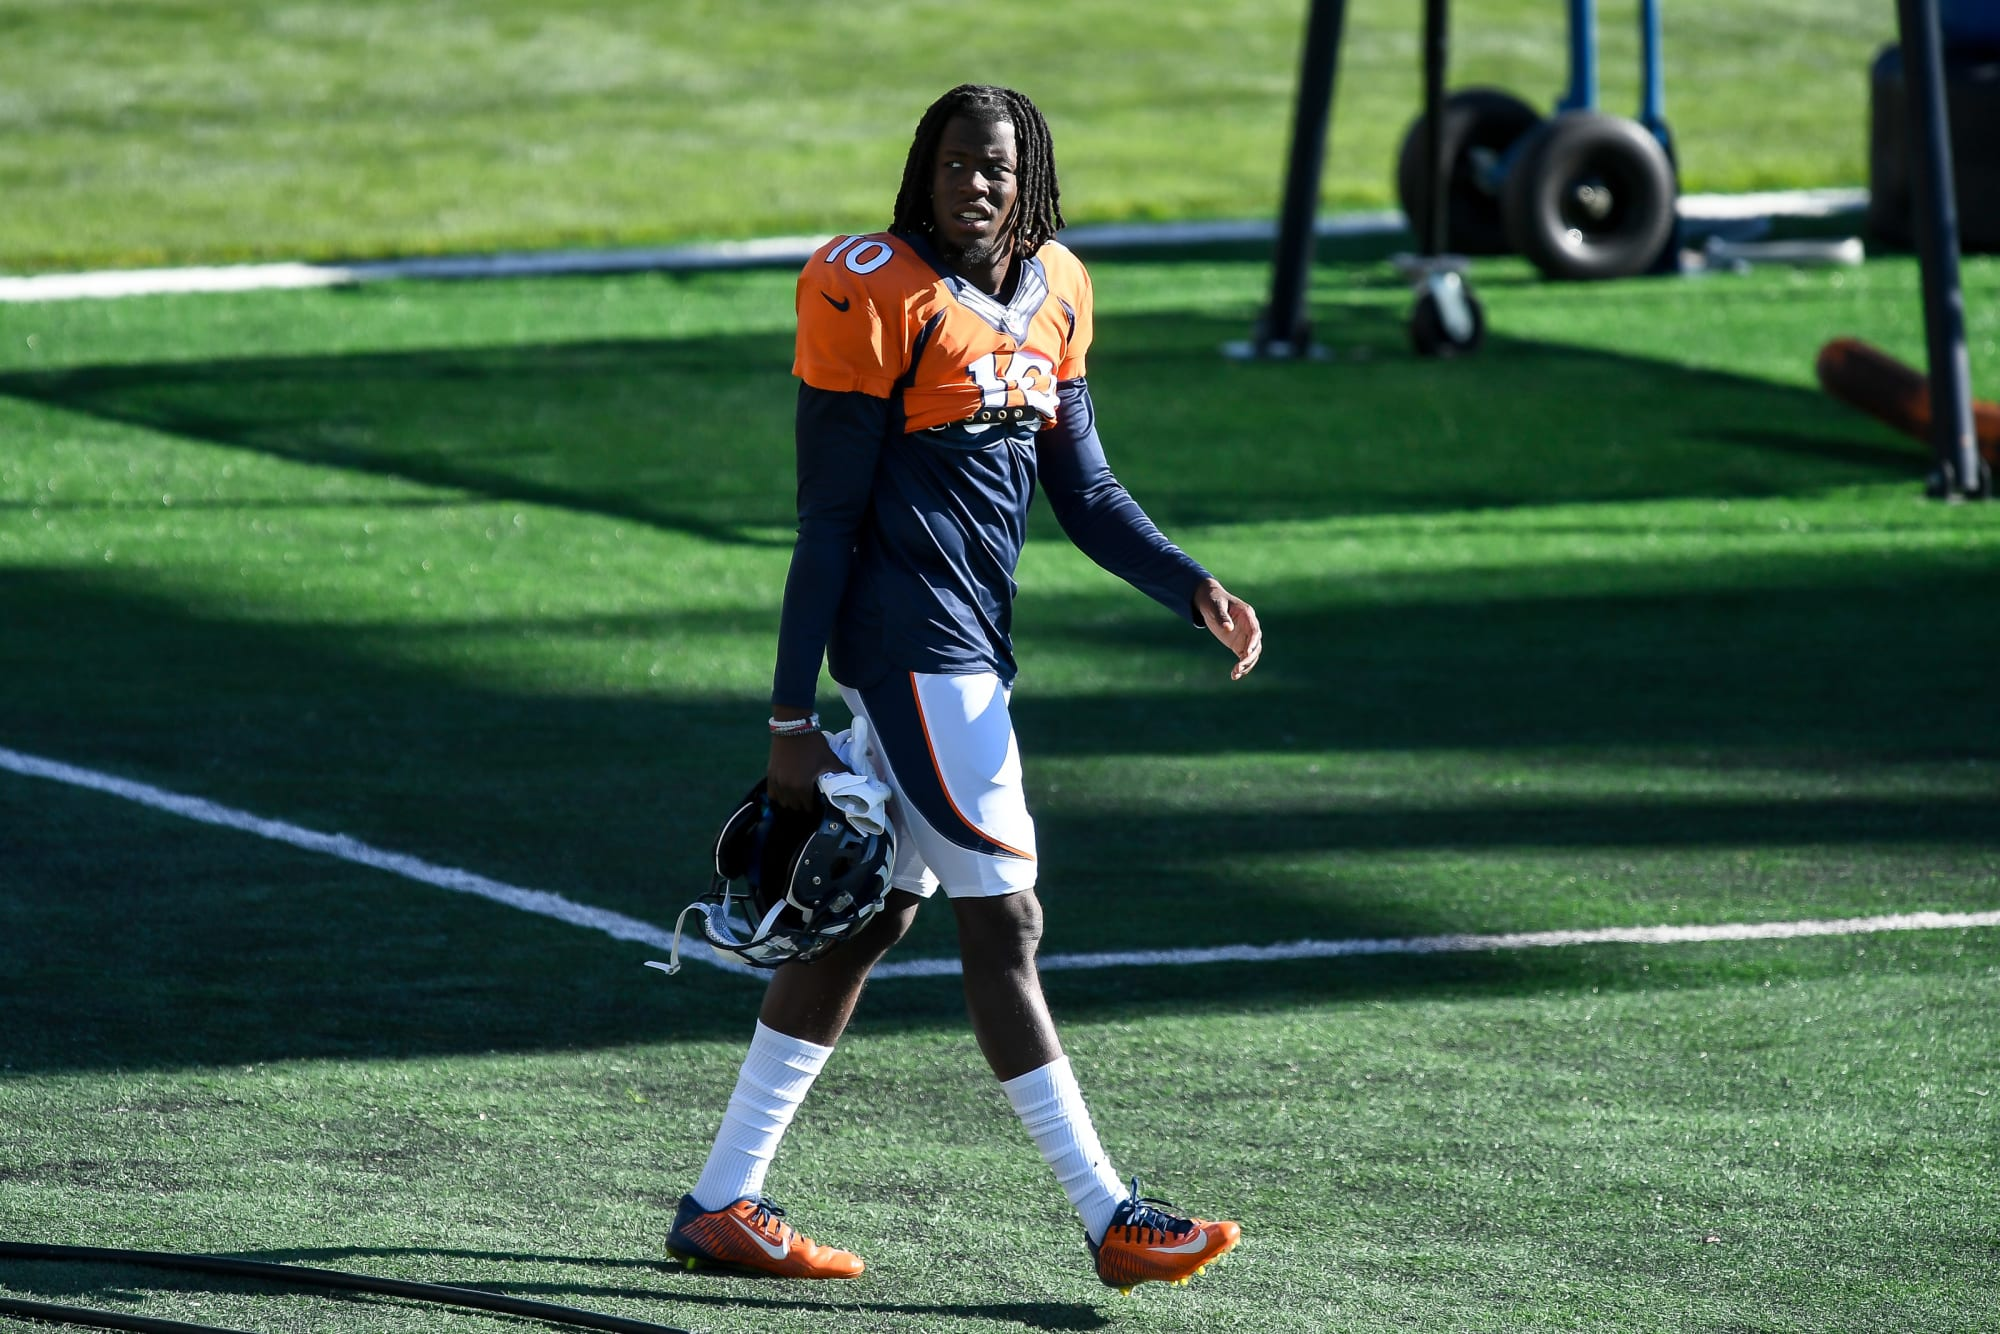 Denver Broncos Gameday: Jerry Jeudy capable of that big game